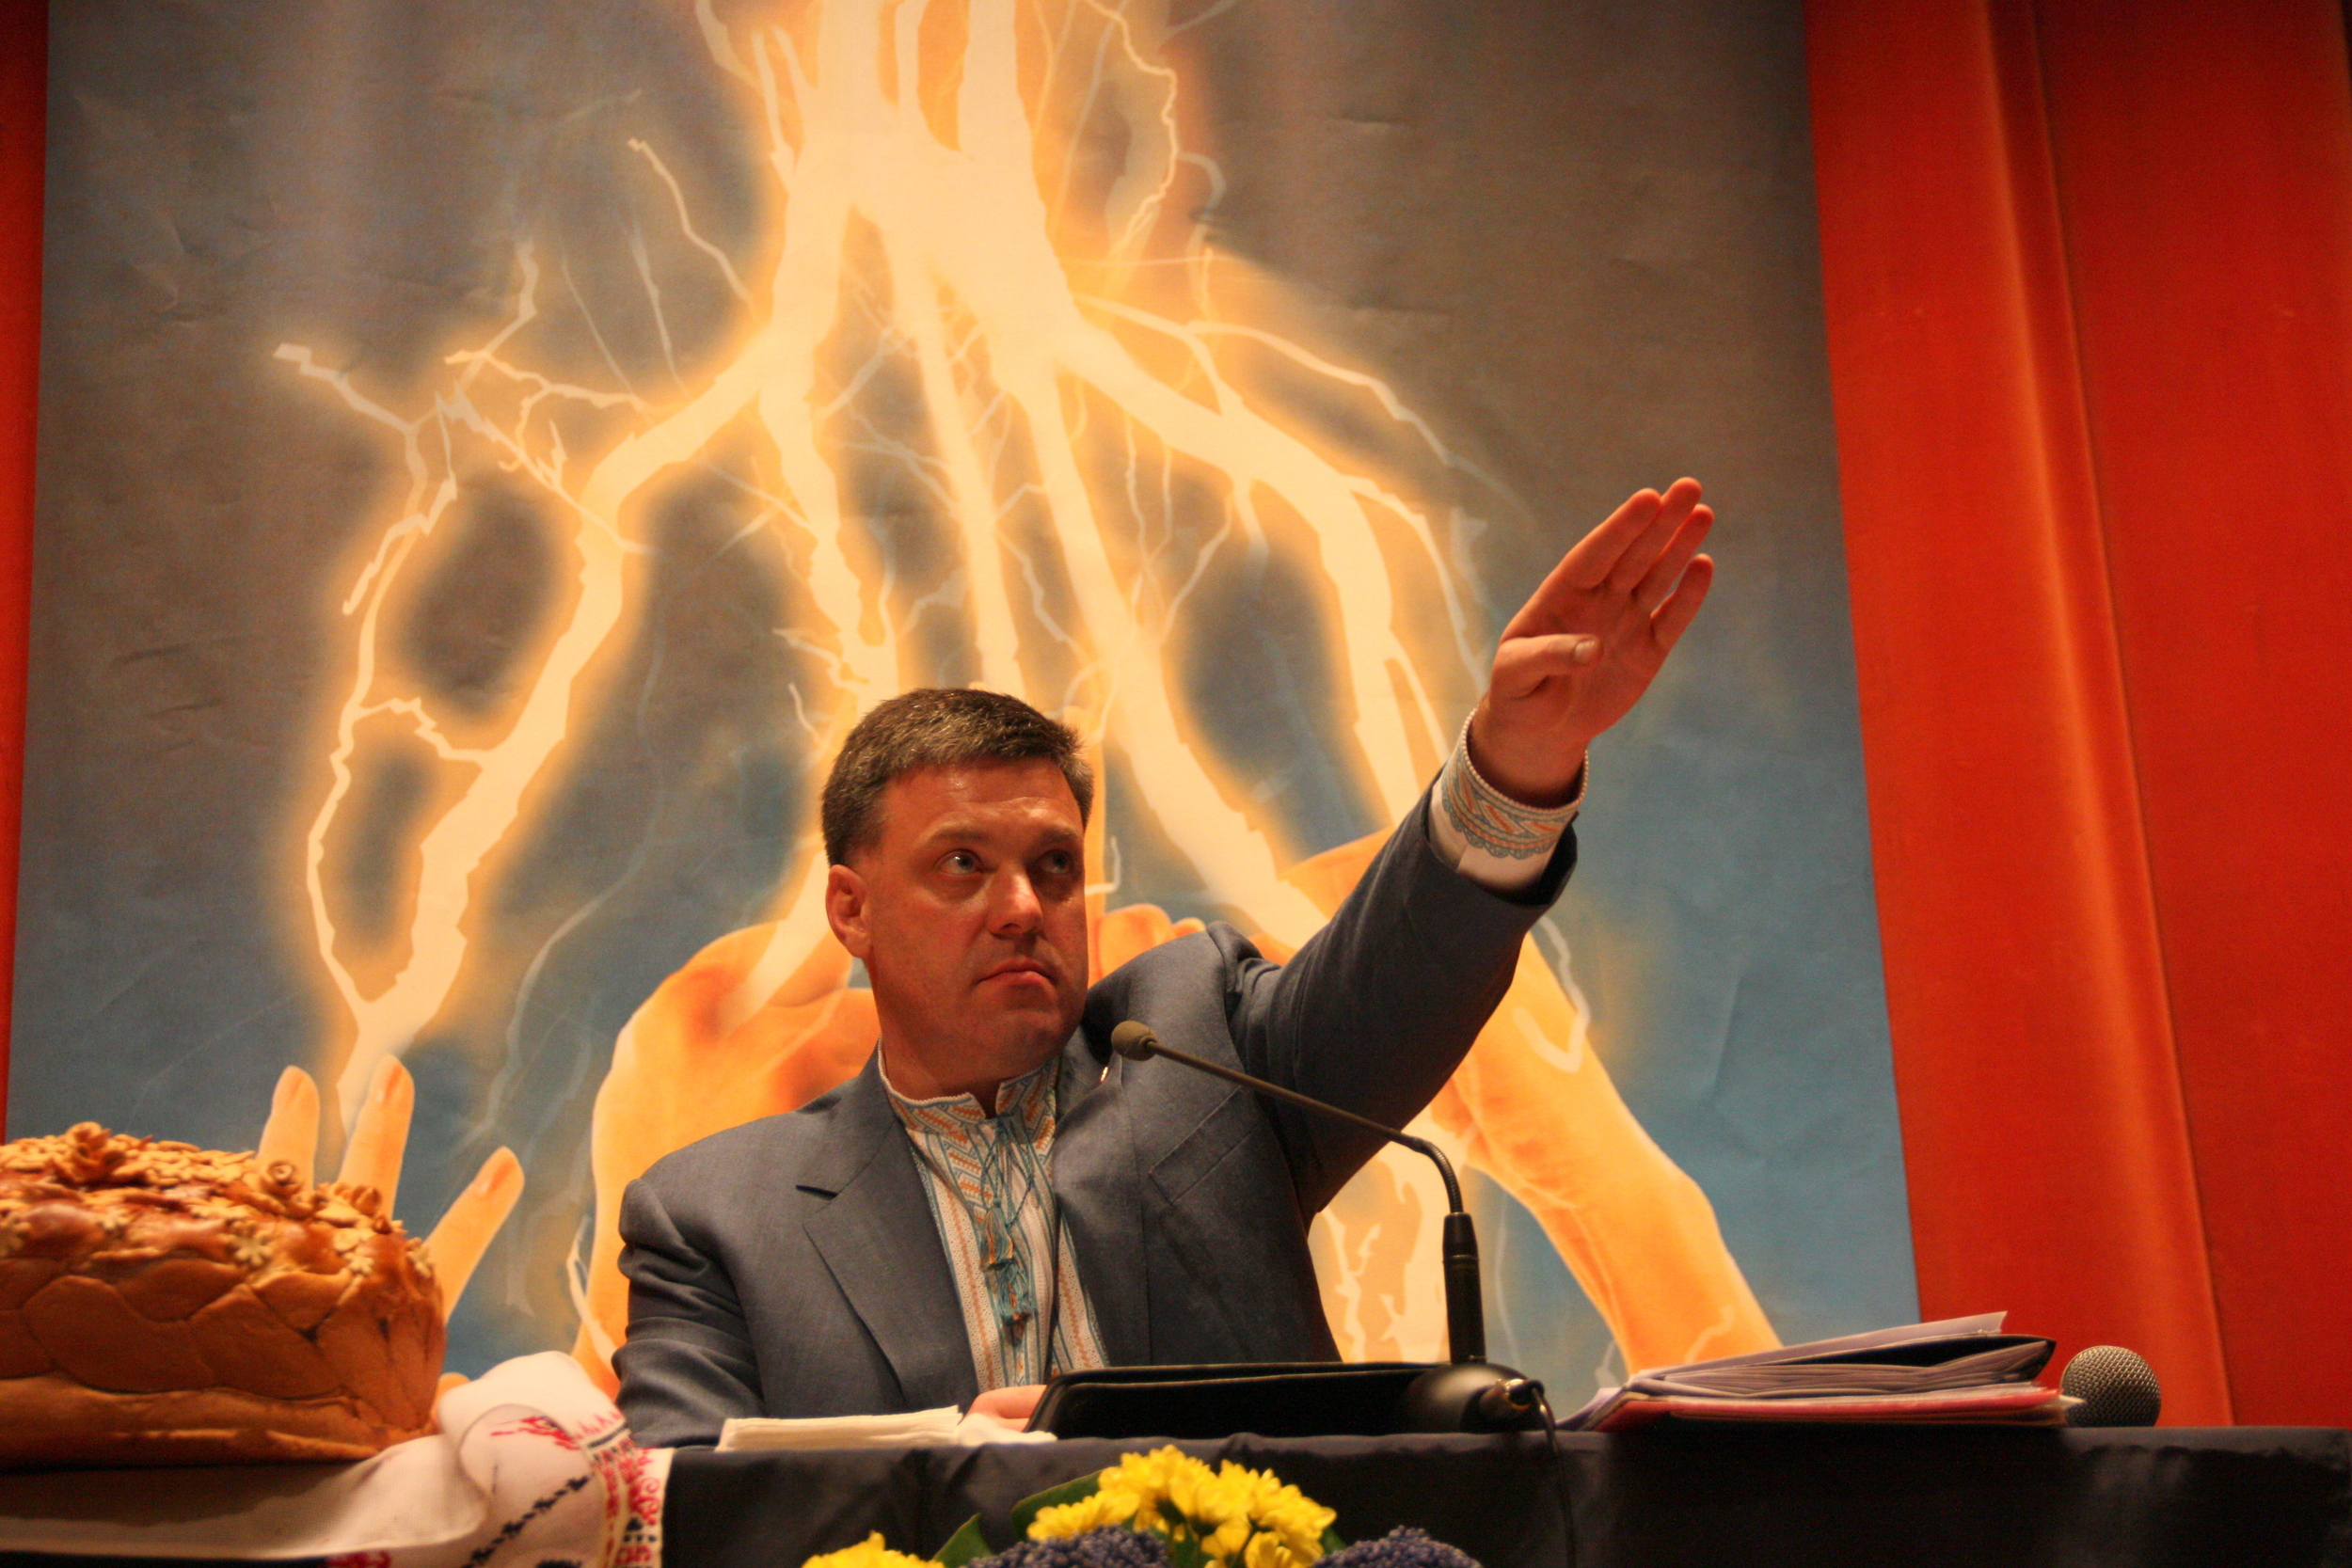 """Oleh Tyahnybok, leader of the far-right Svoboda Party, formerly the """"Social-National Party."""" Get it? Social-National: National Socialist?"""